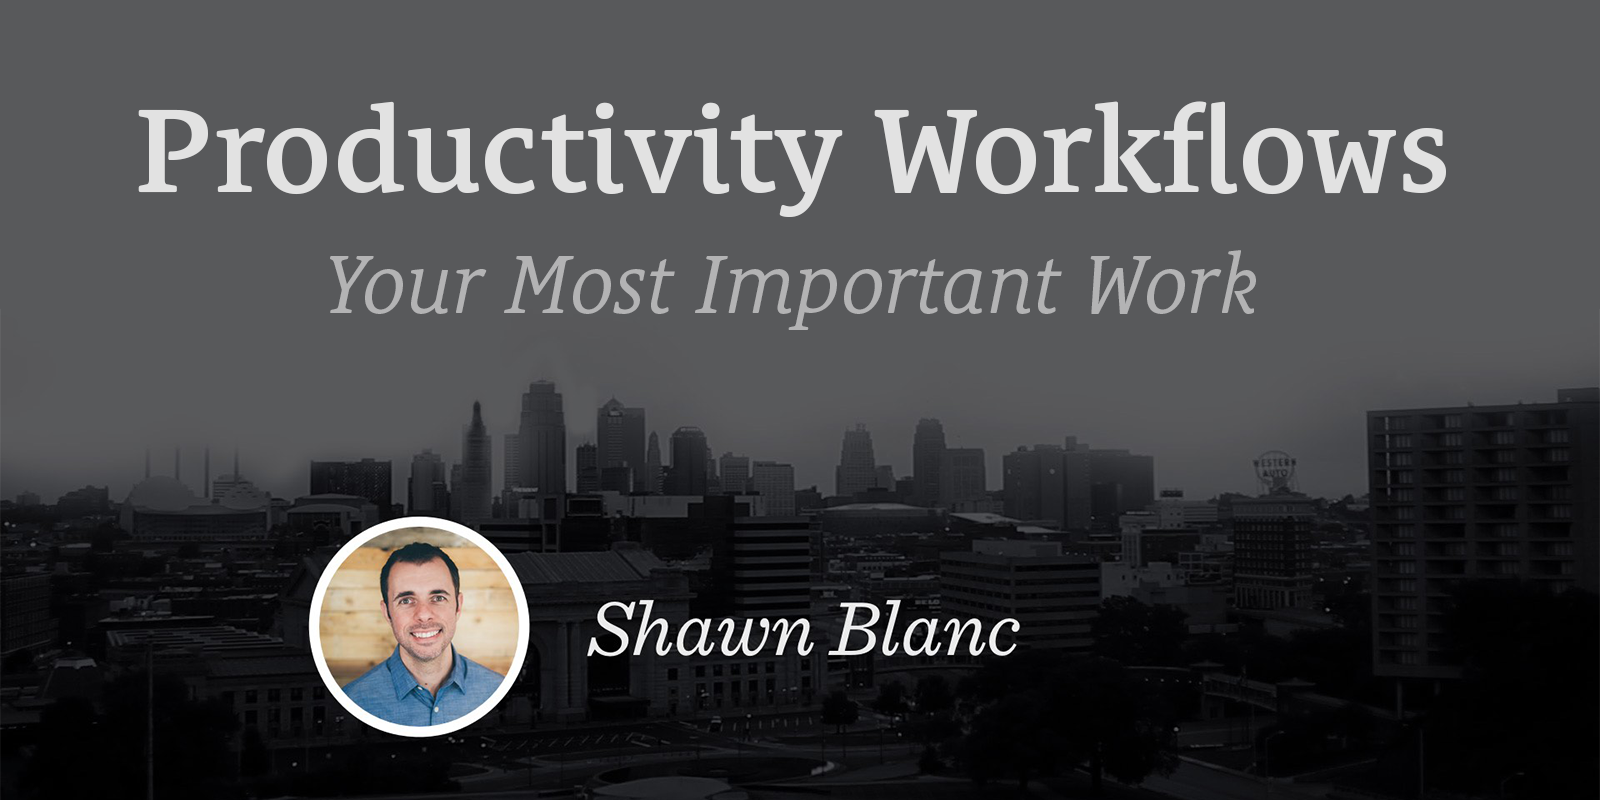 Productivity Workflows